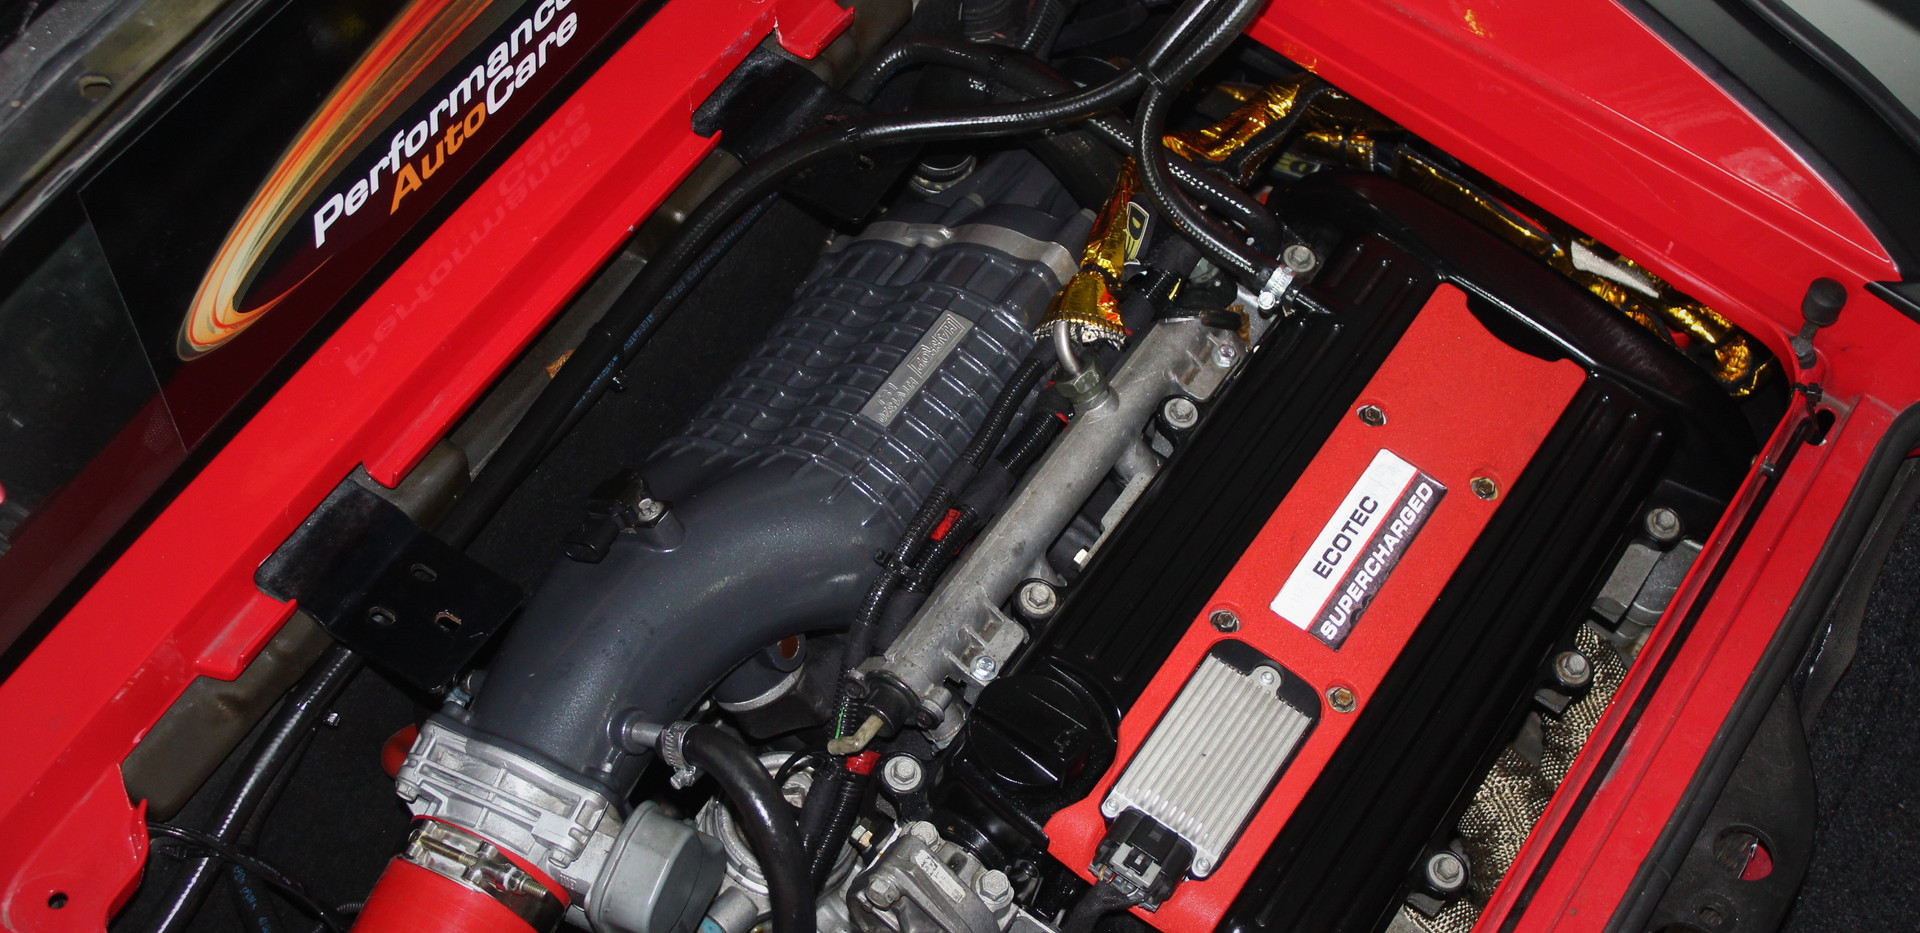 VX220 Engine Bay